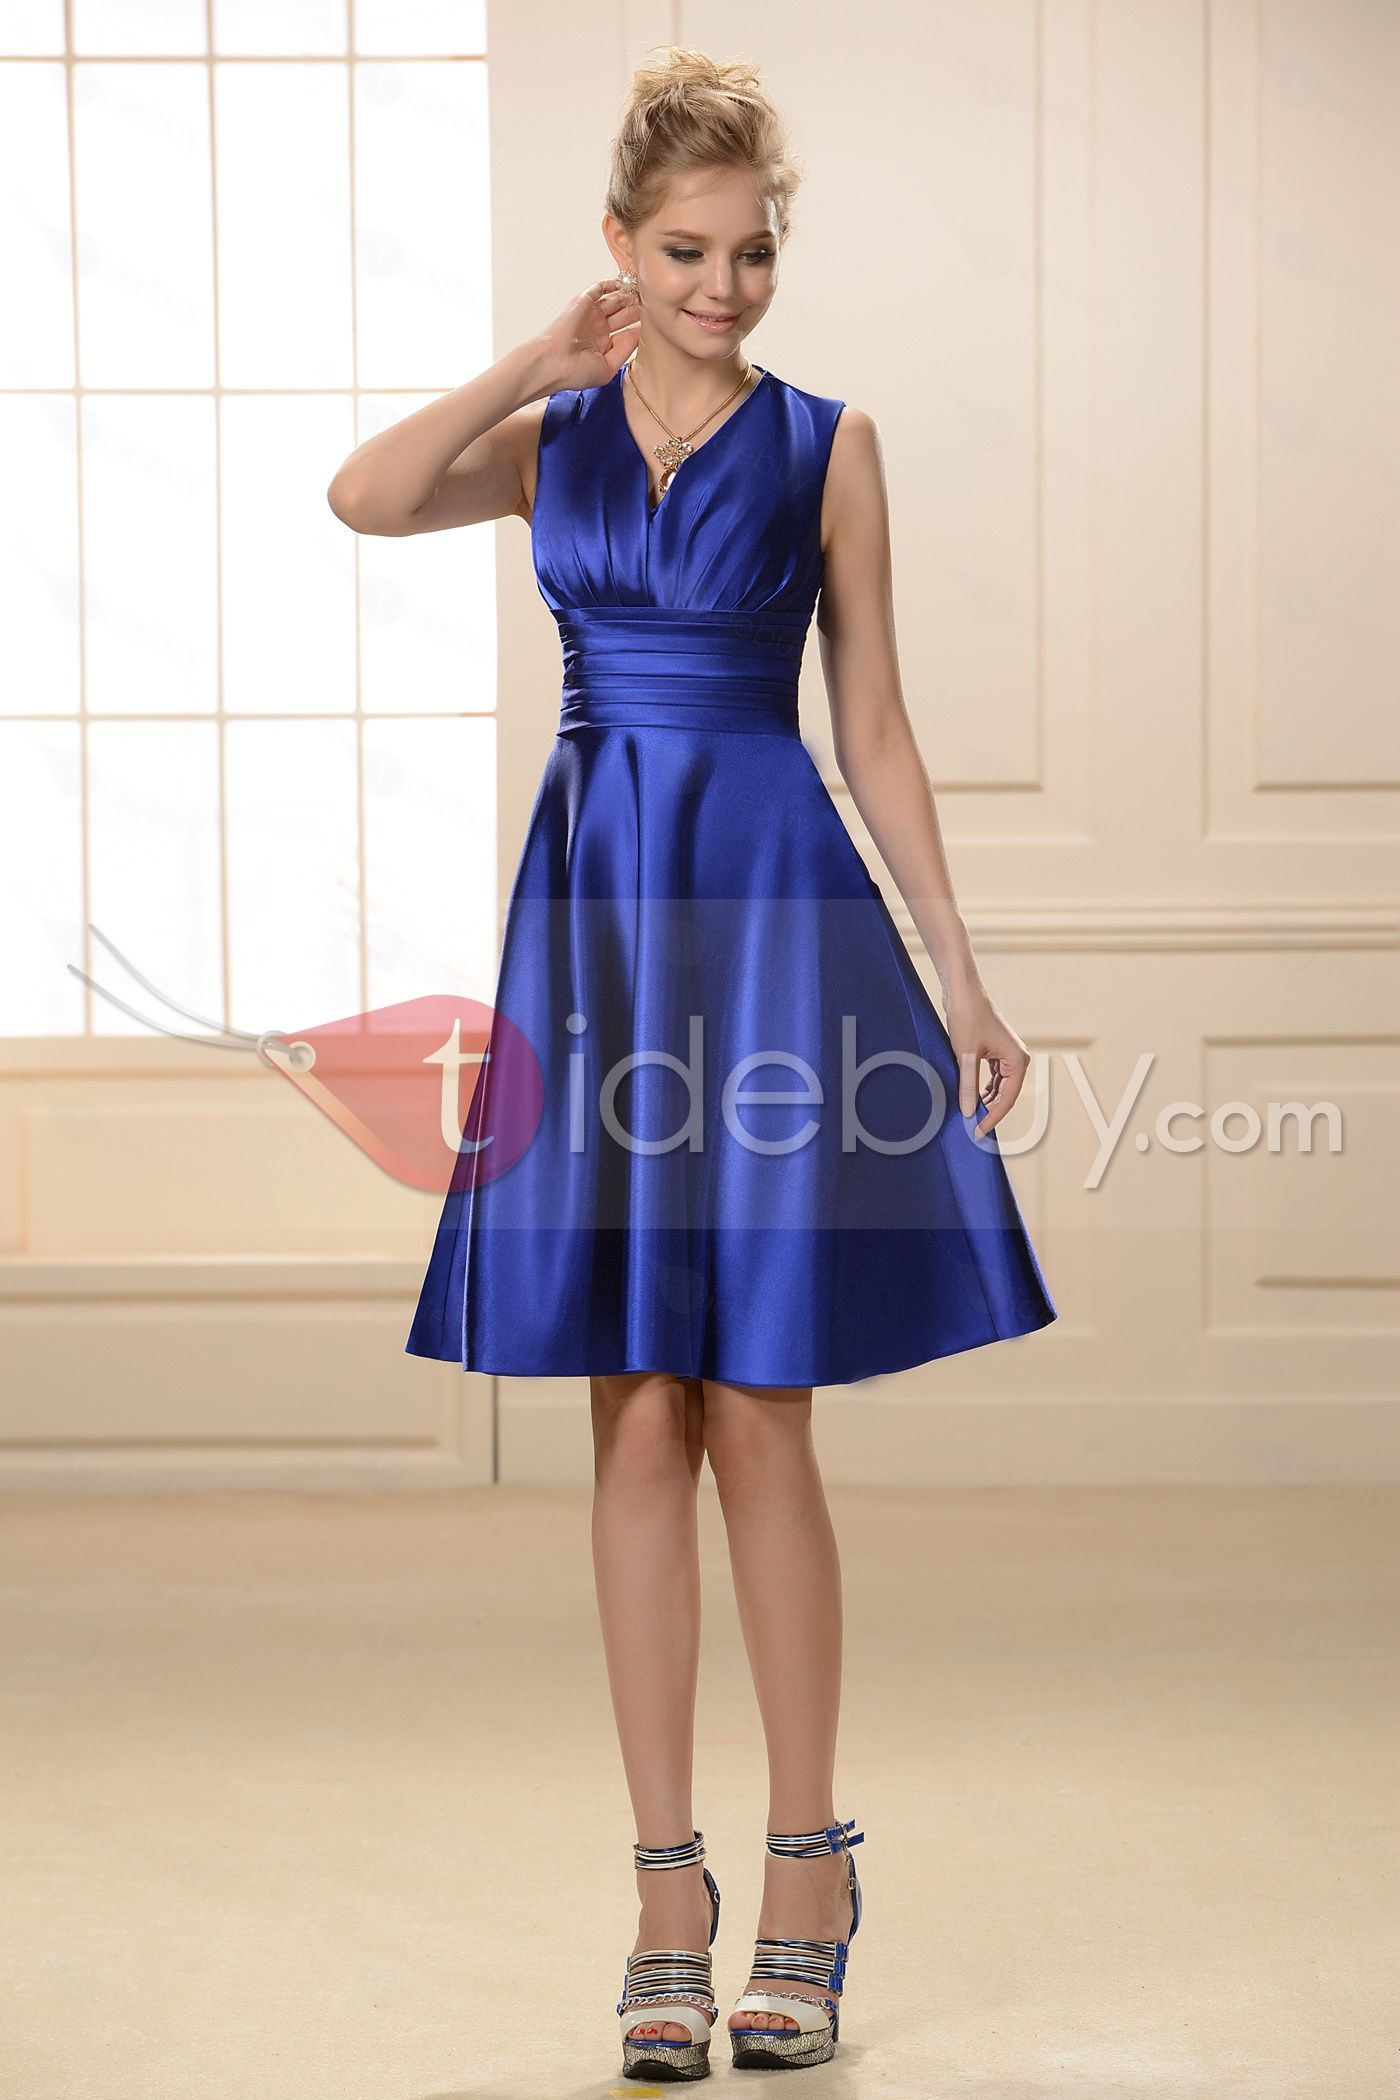 Simple style ruched aline kneelength vneck bridesmaid dress